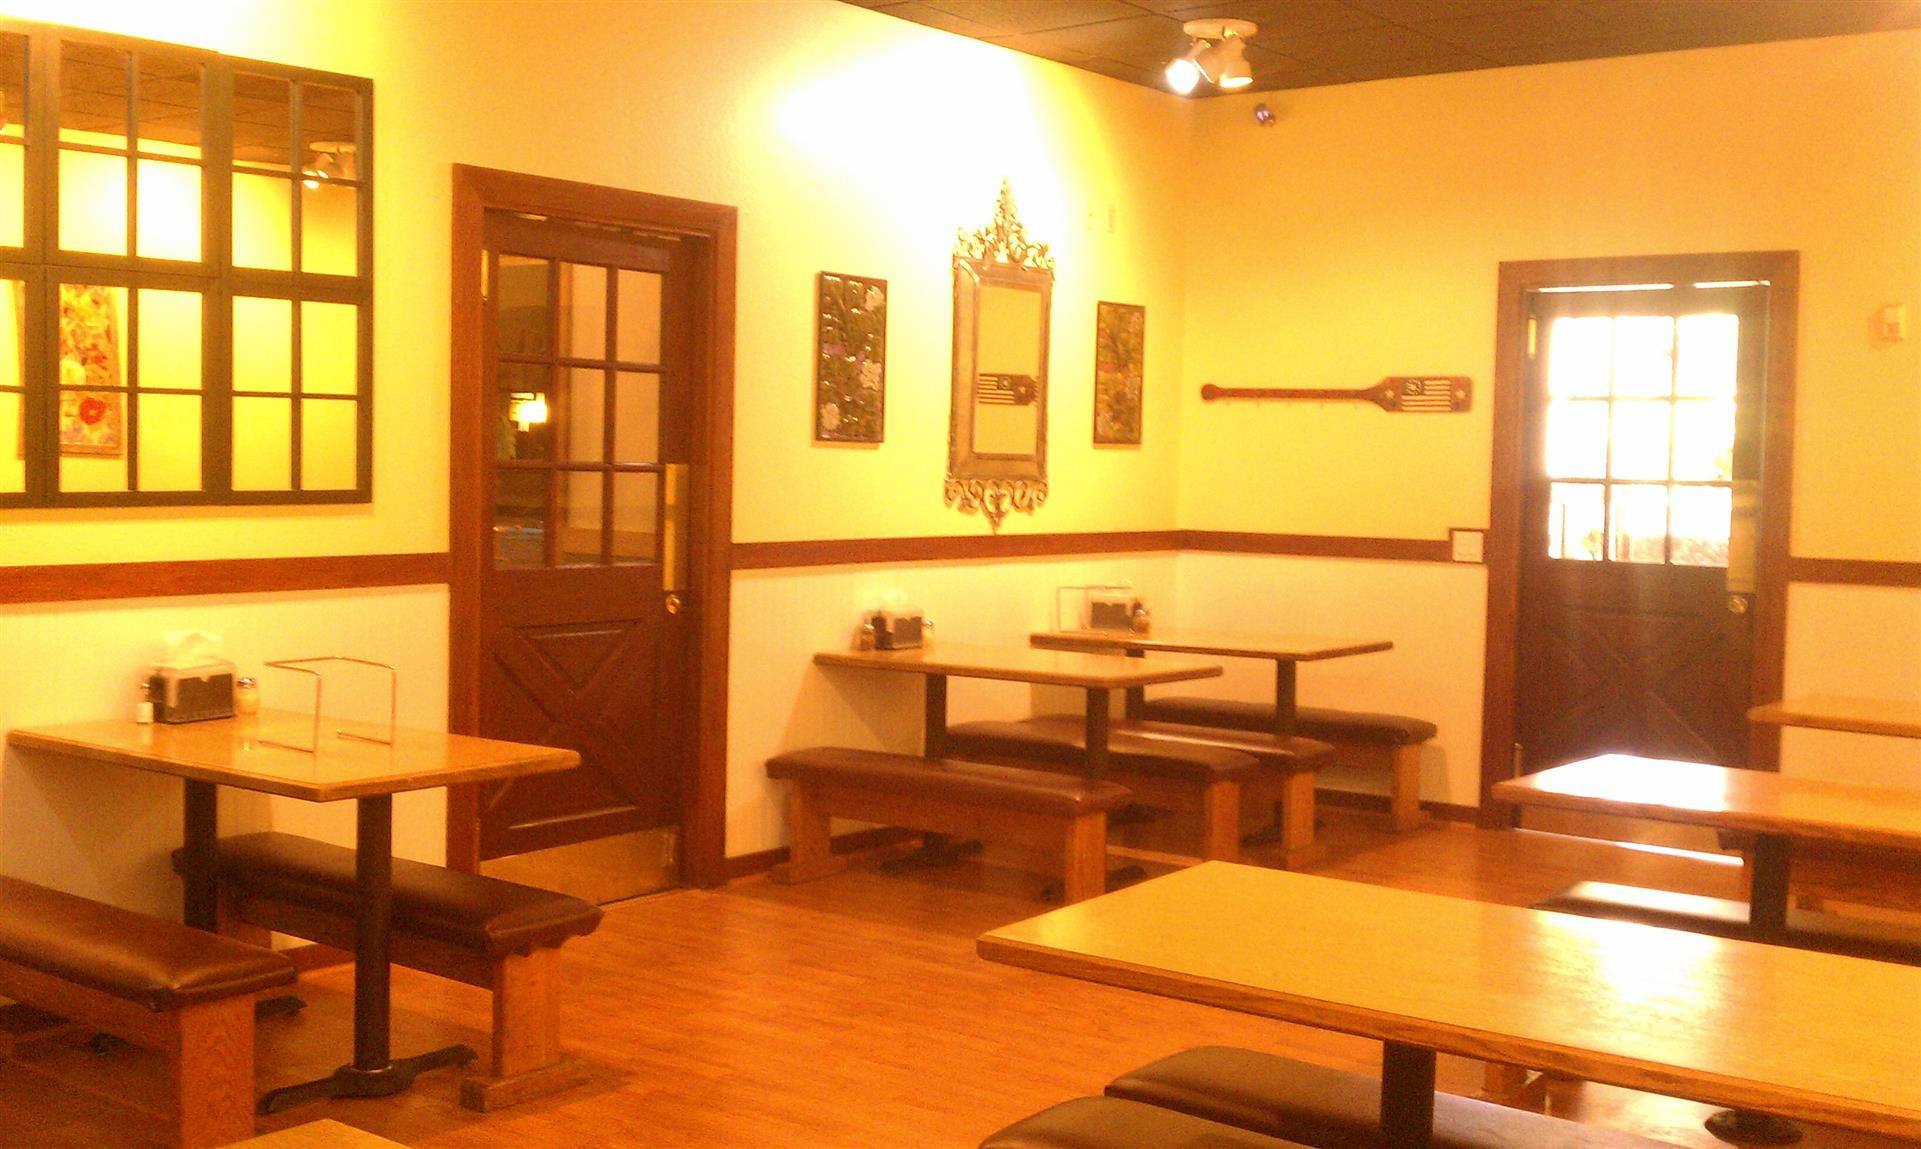 interior view of pavlo's pizza dining room with warm lighting and rustic style booths